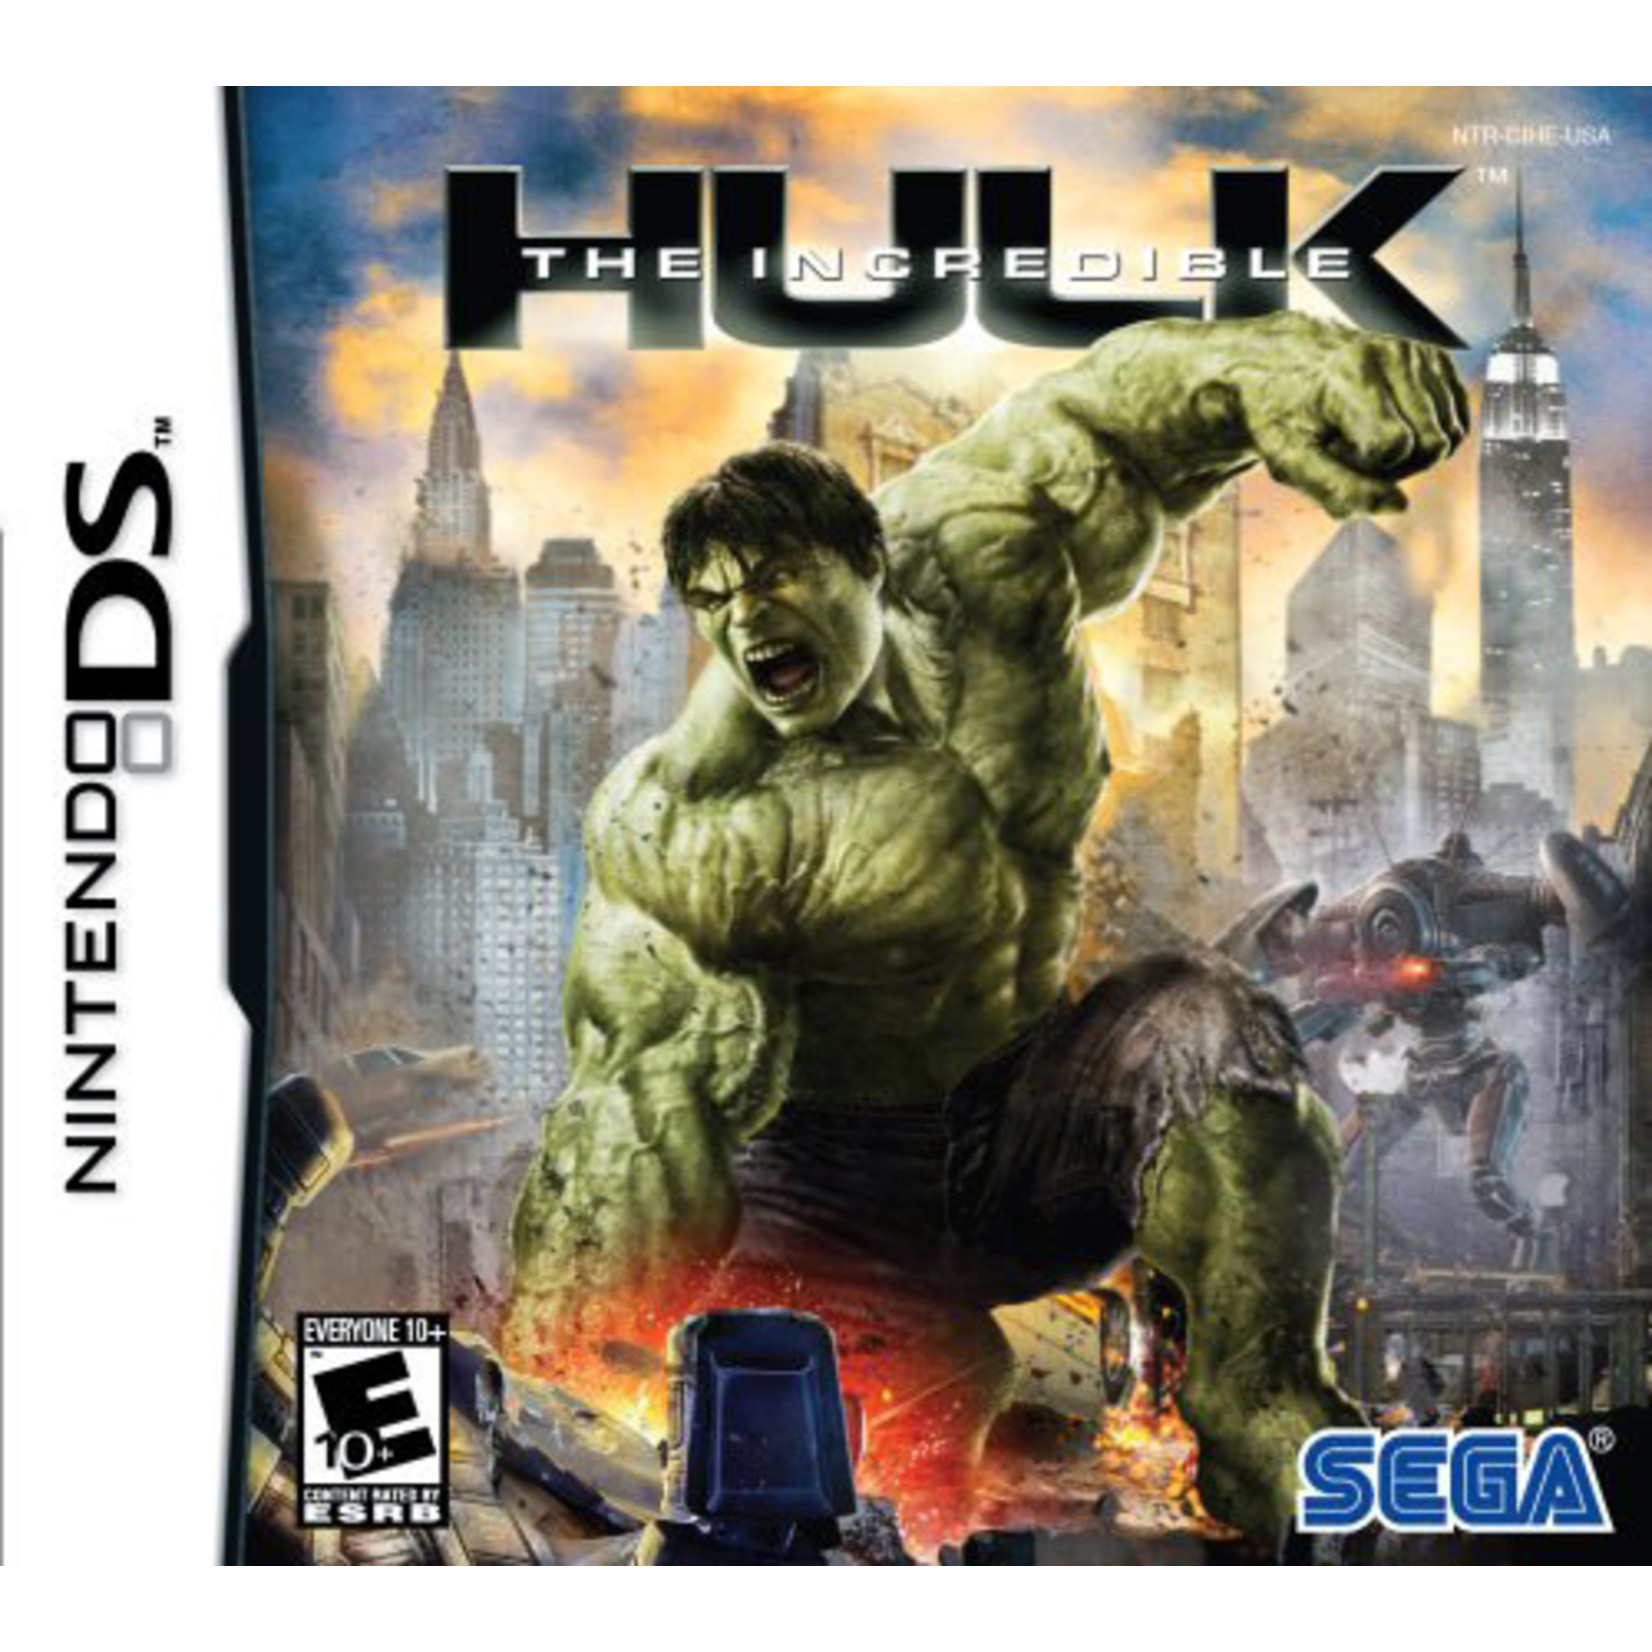 DS-THE INCREDIBLE HULK